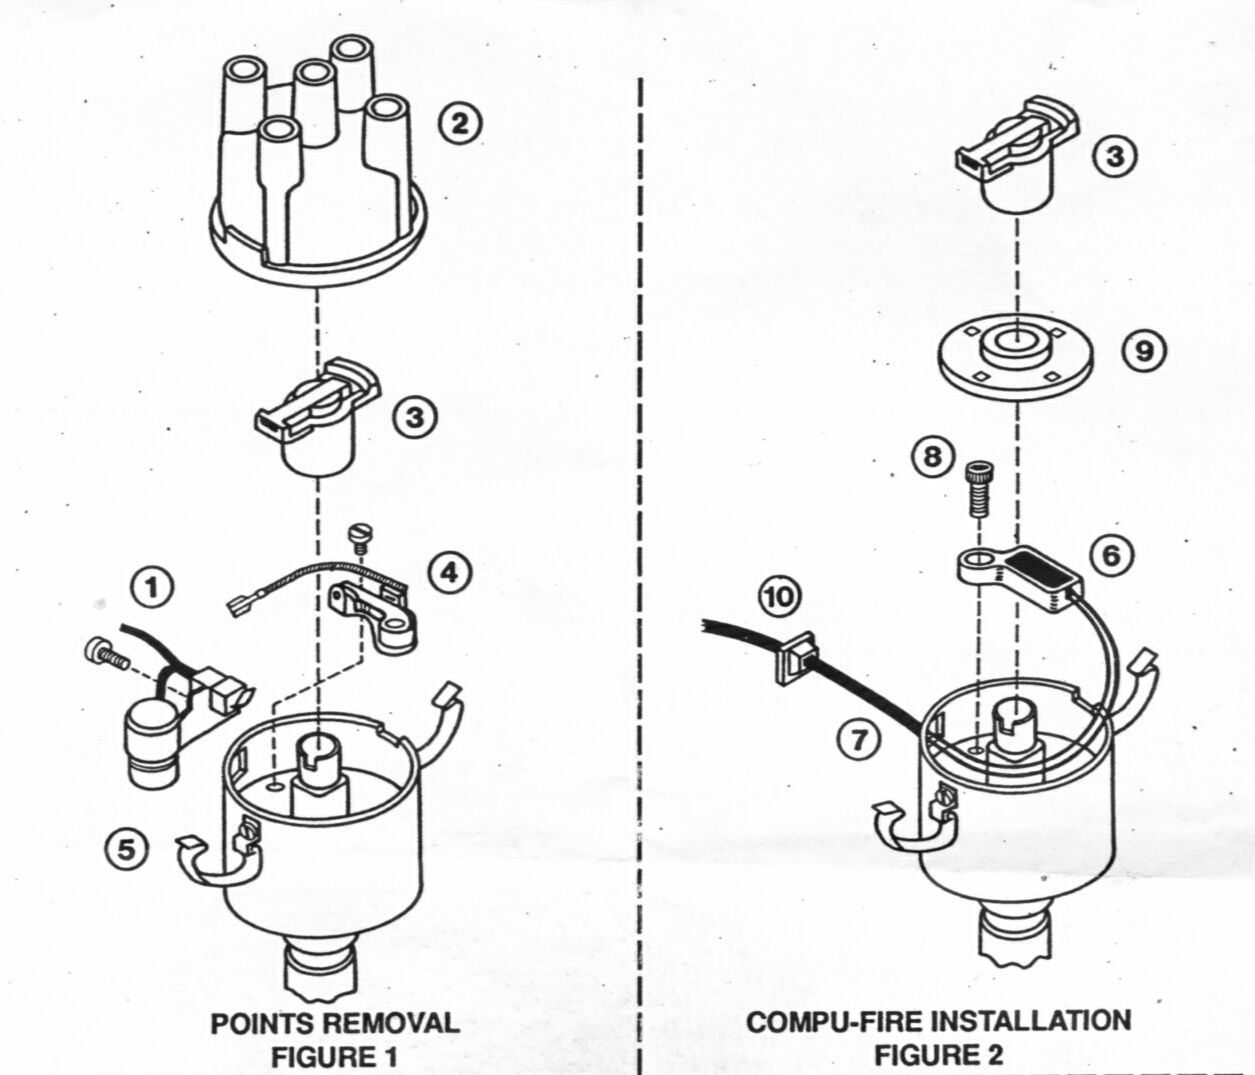 compufire2 compufire vw beetle electronic ignition wiring diagram at bayanpartner.co